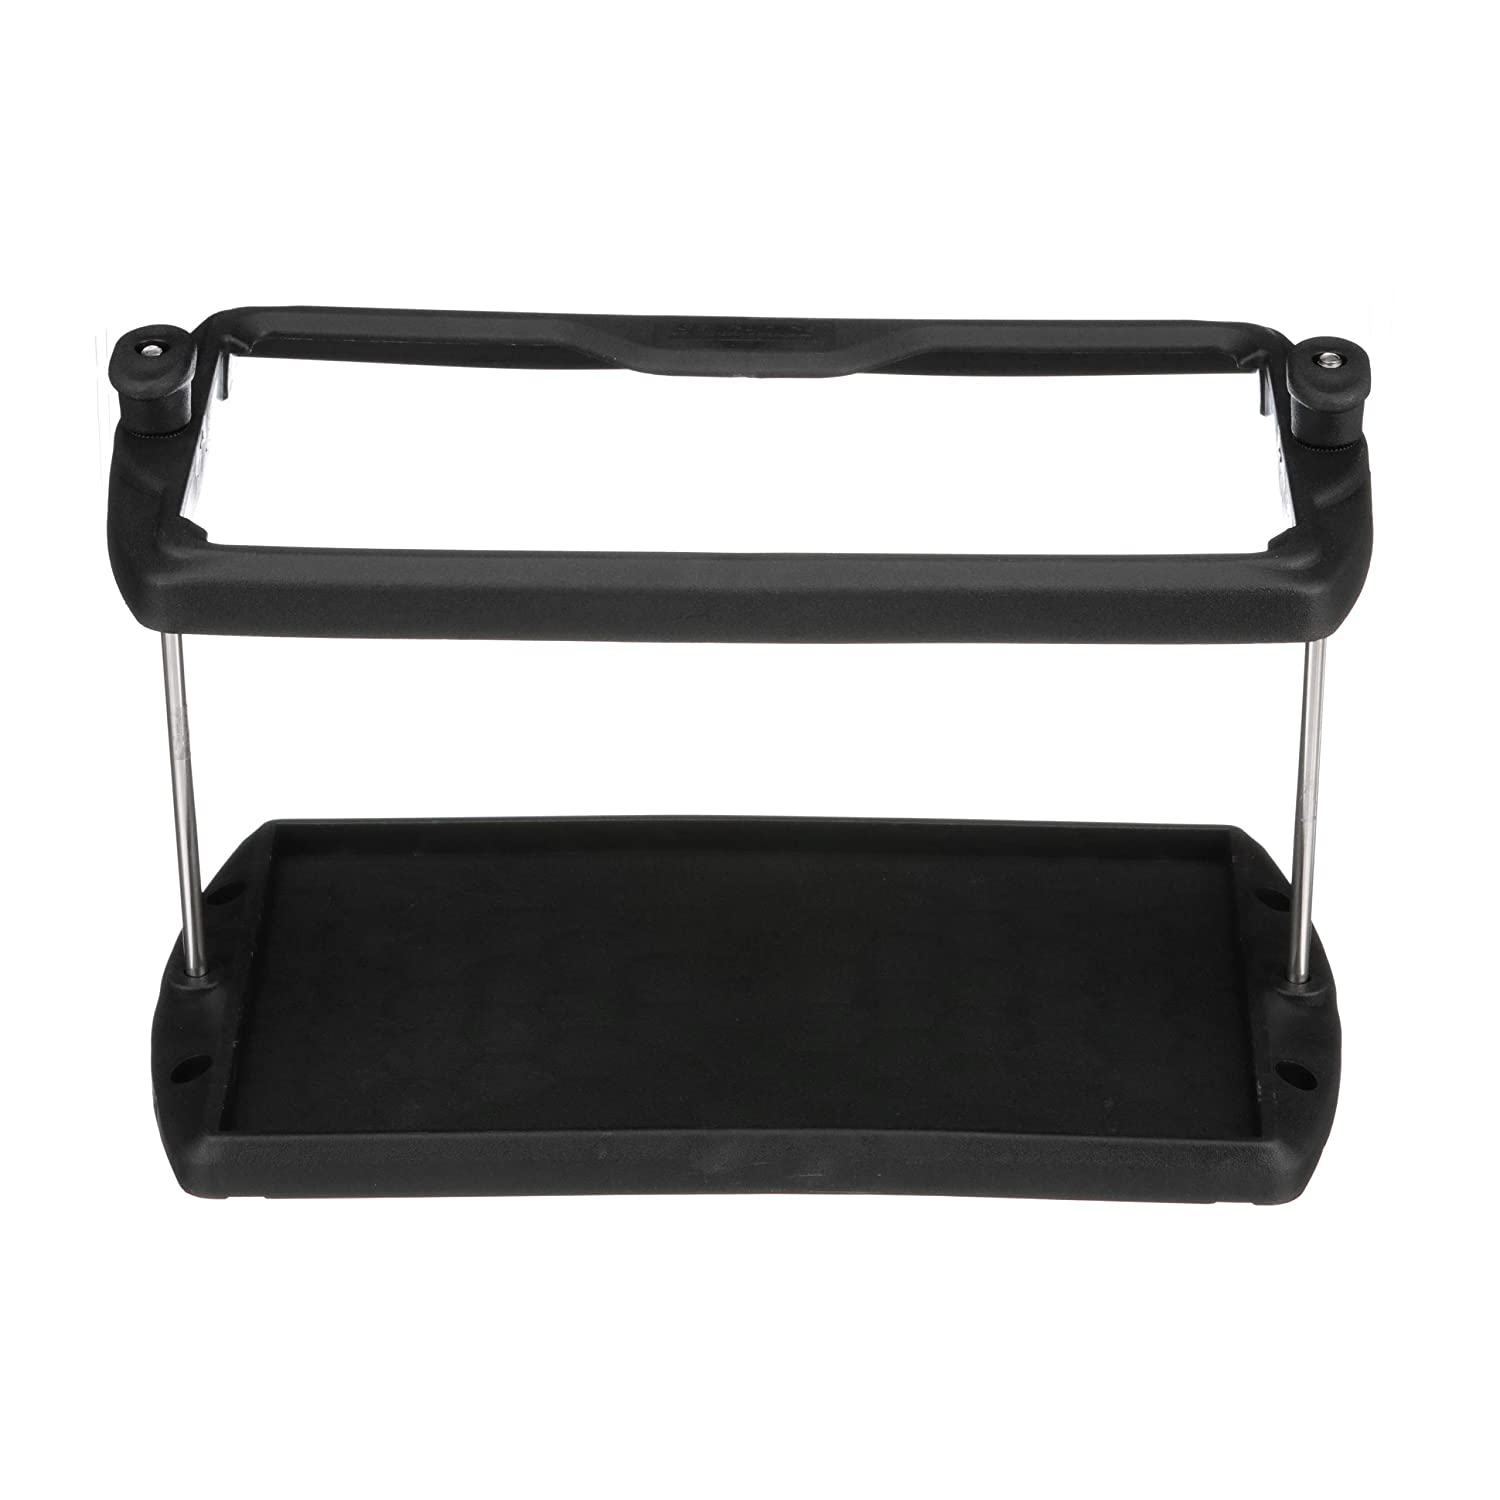 SEACHOICE 21981 USCG-Approved Premium Marine Group 27 Series Hold-Down Battery Tray Black